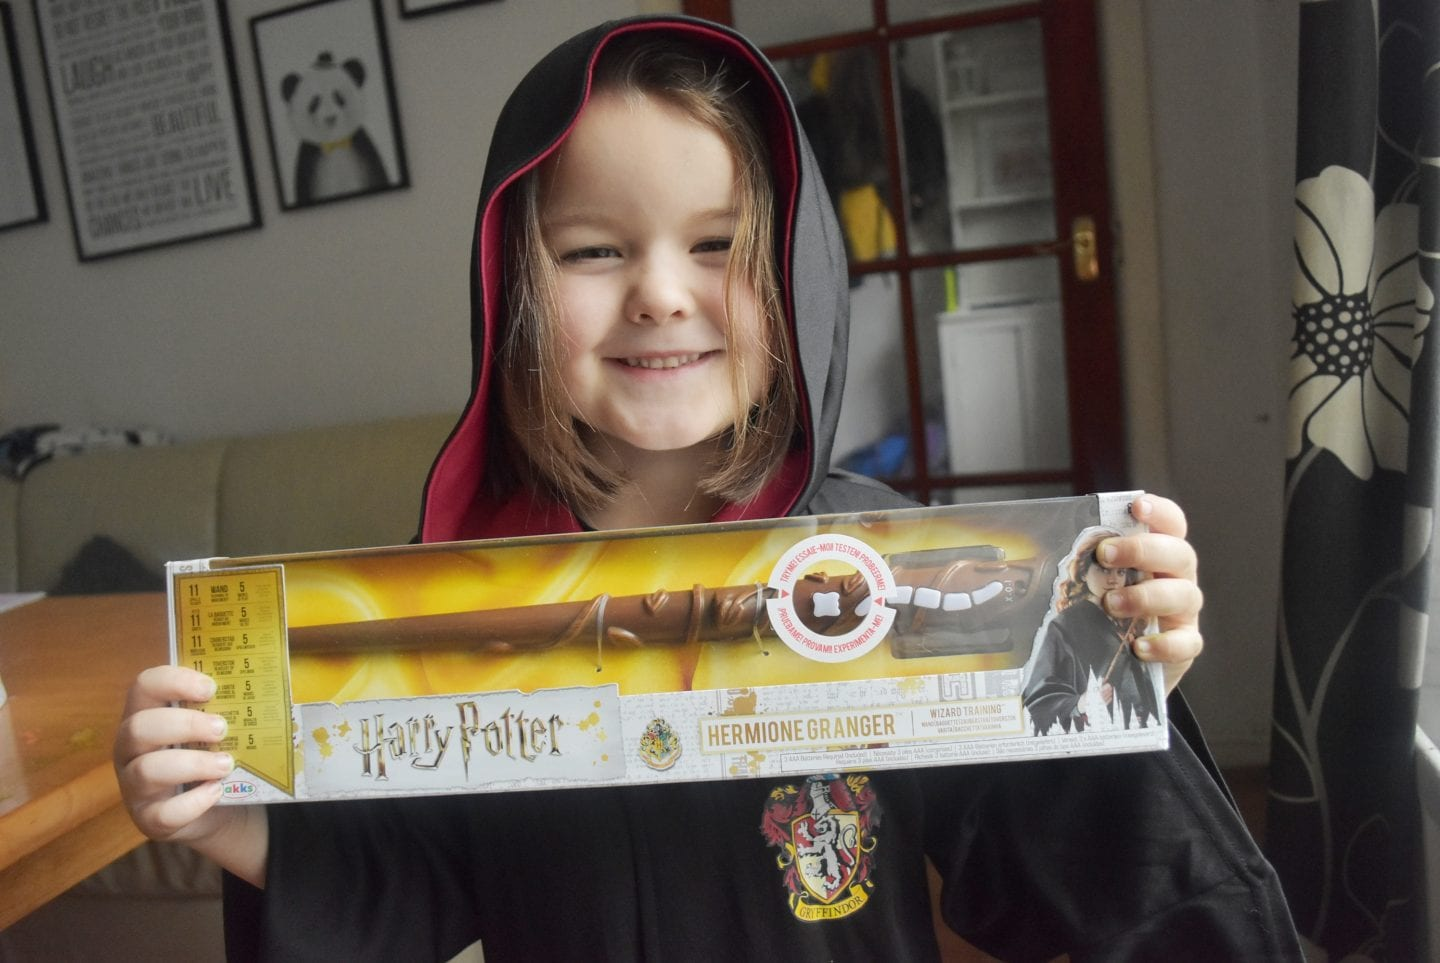 Training for Hogwarts with Harry Potter Wizard Training Wands